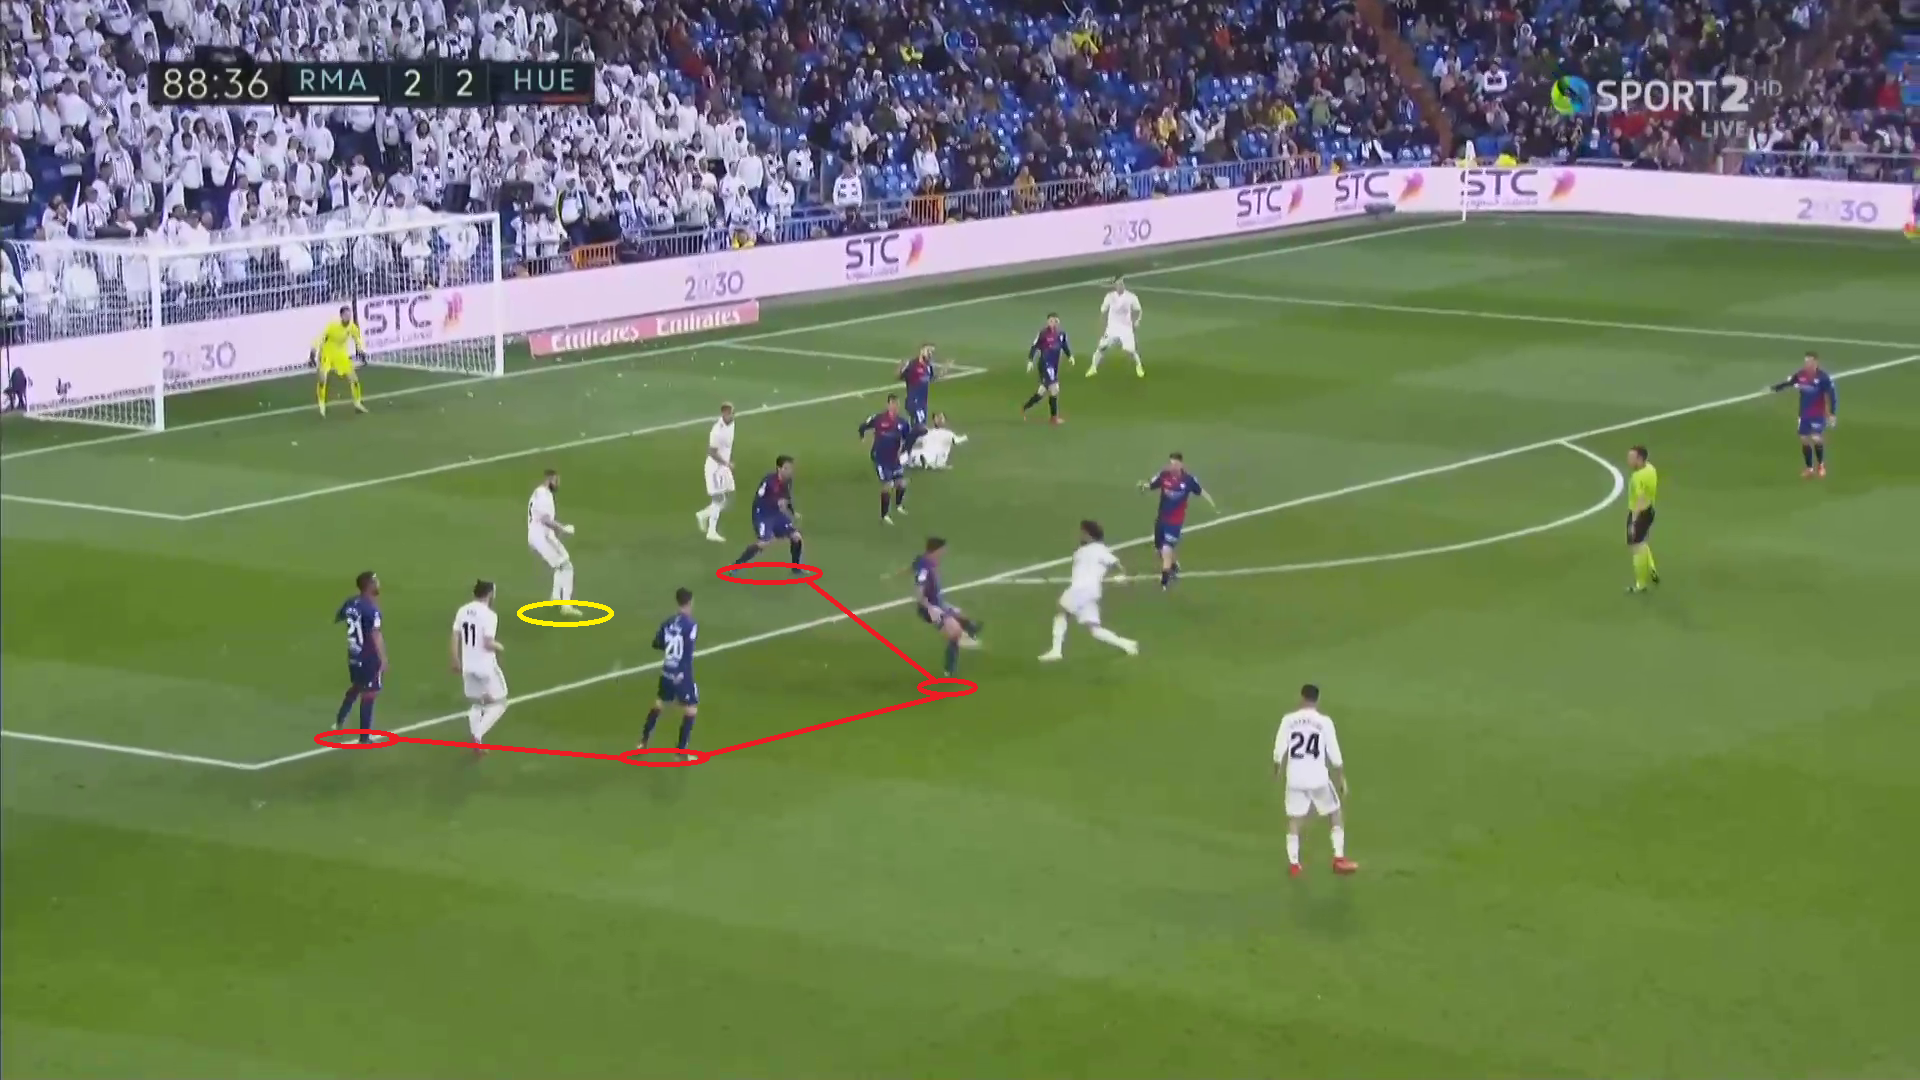 Real Madrid Huesca La Liga Tactical Analysis